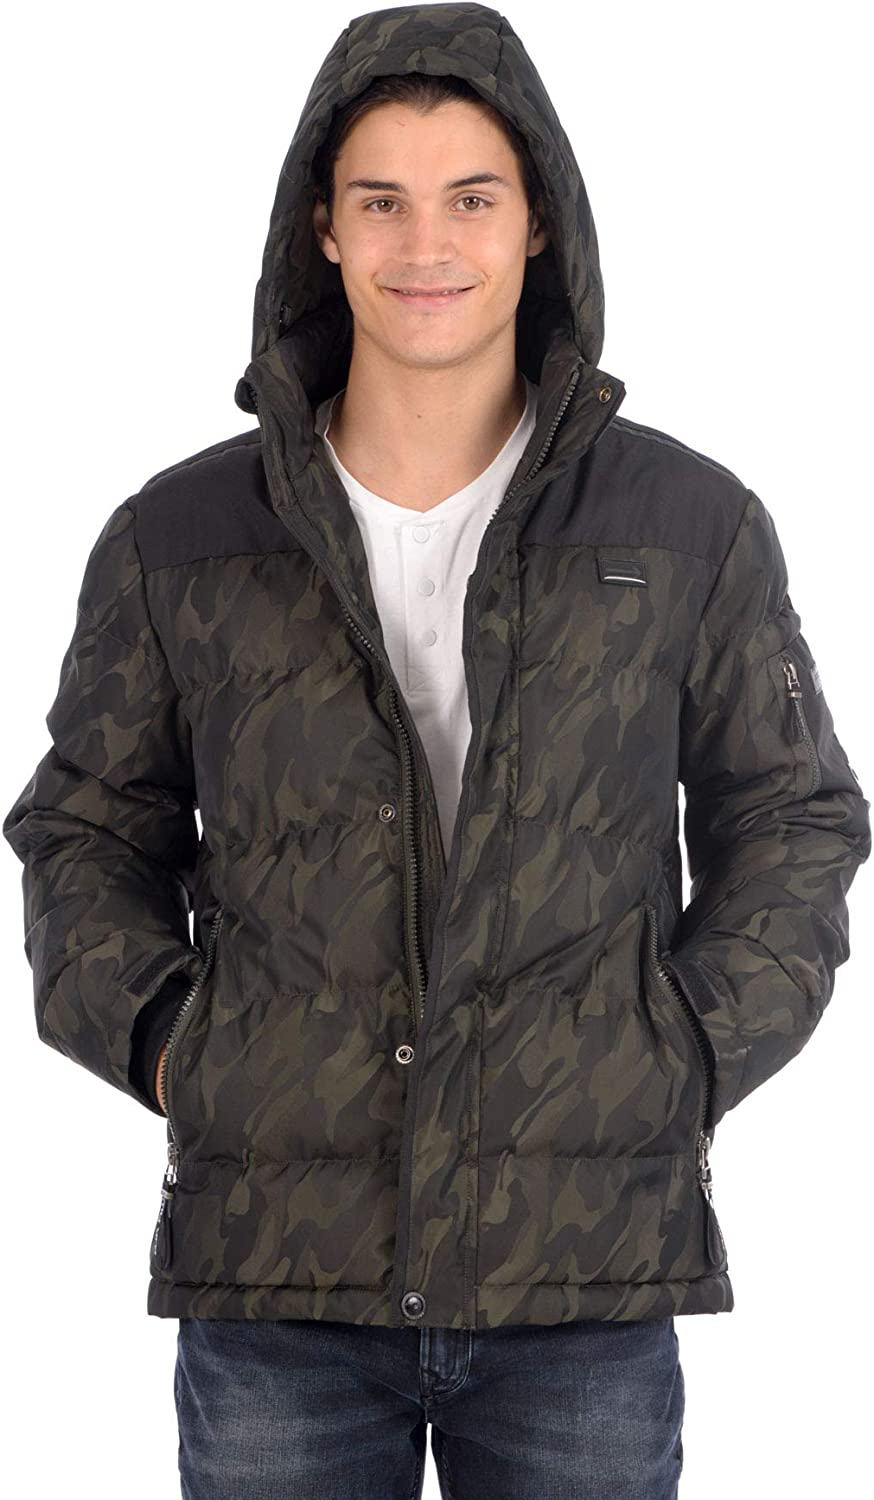 Projek Raw Mens Camo Zip Front Jacket with Removable Hood